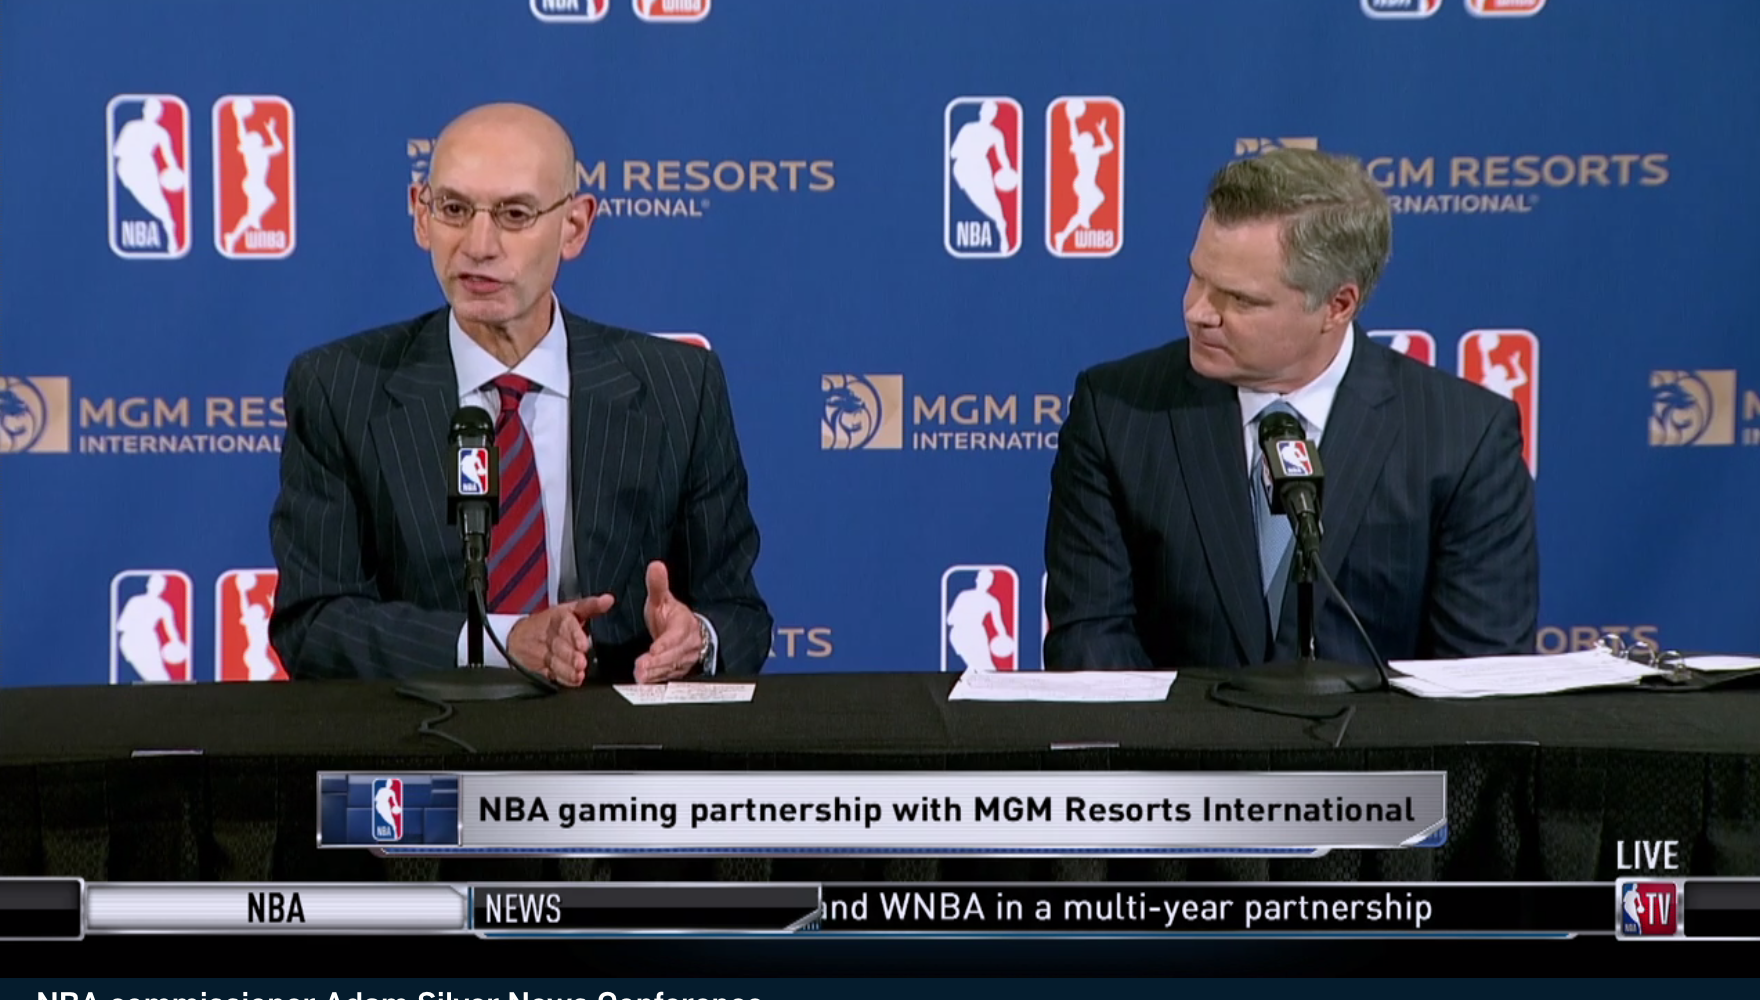 NBA, MGM enter gaming partnership